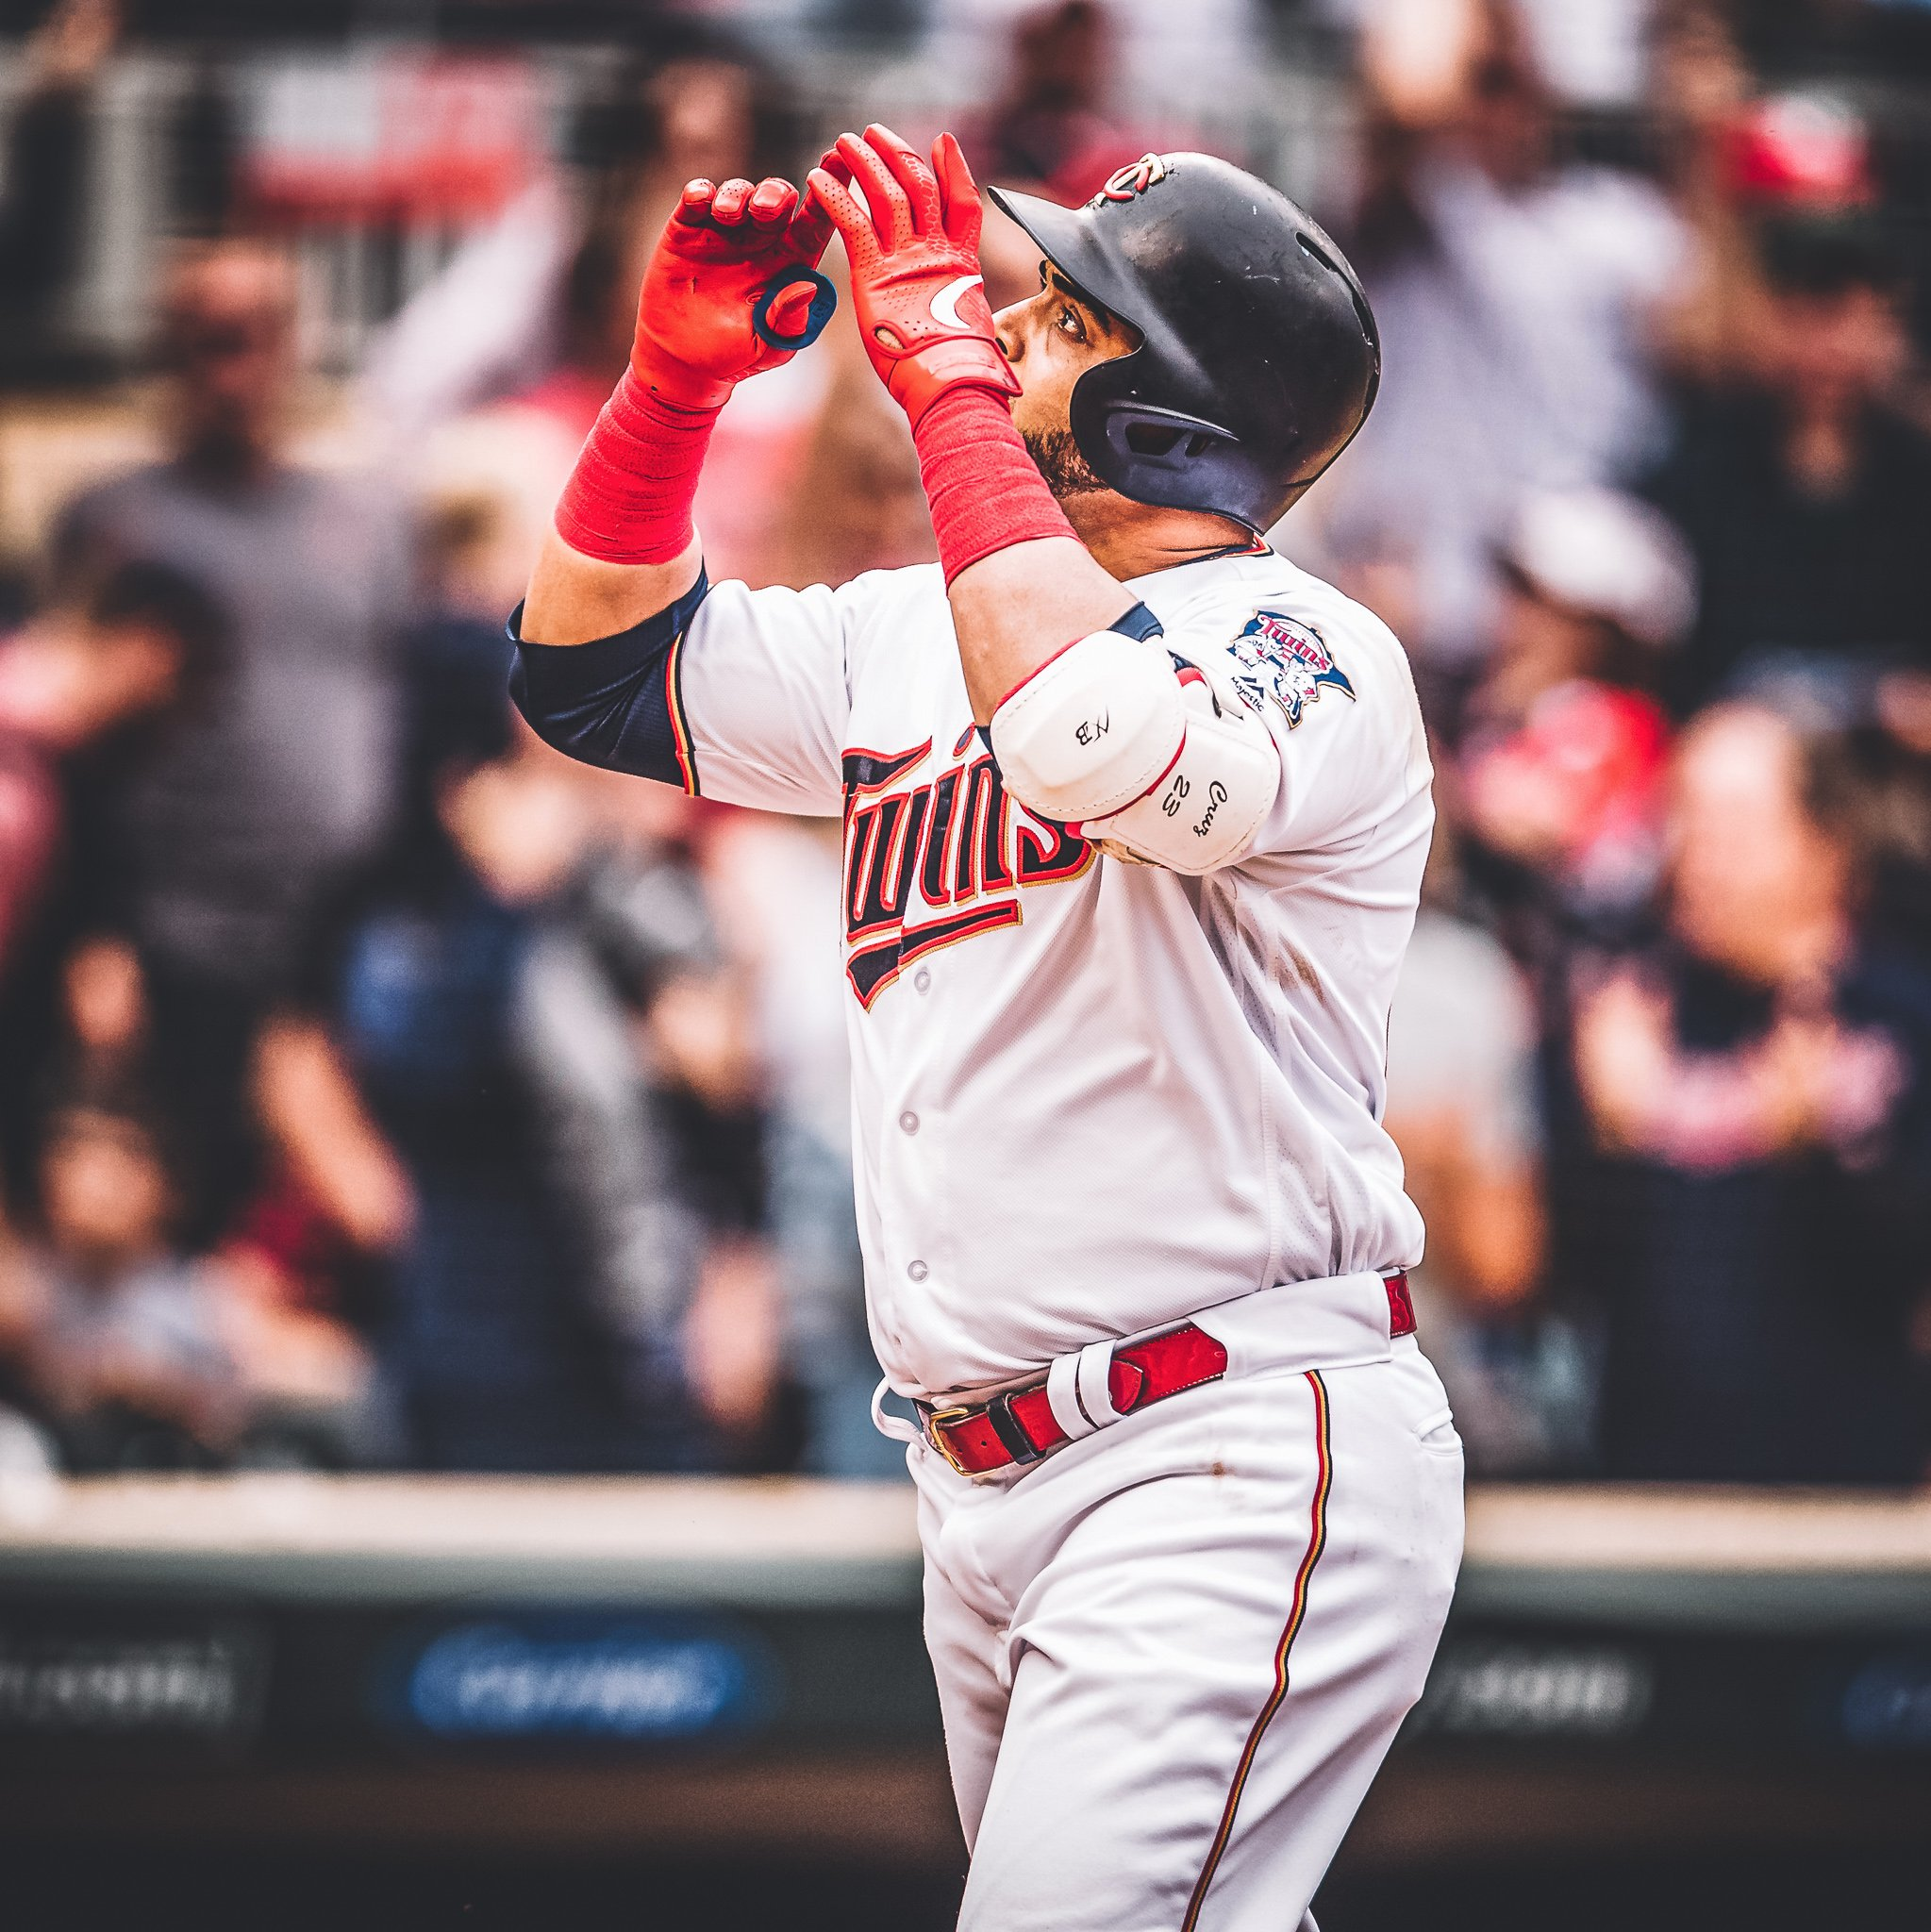 Cruz Minnesota Twins photo via Twitter